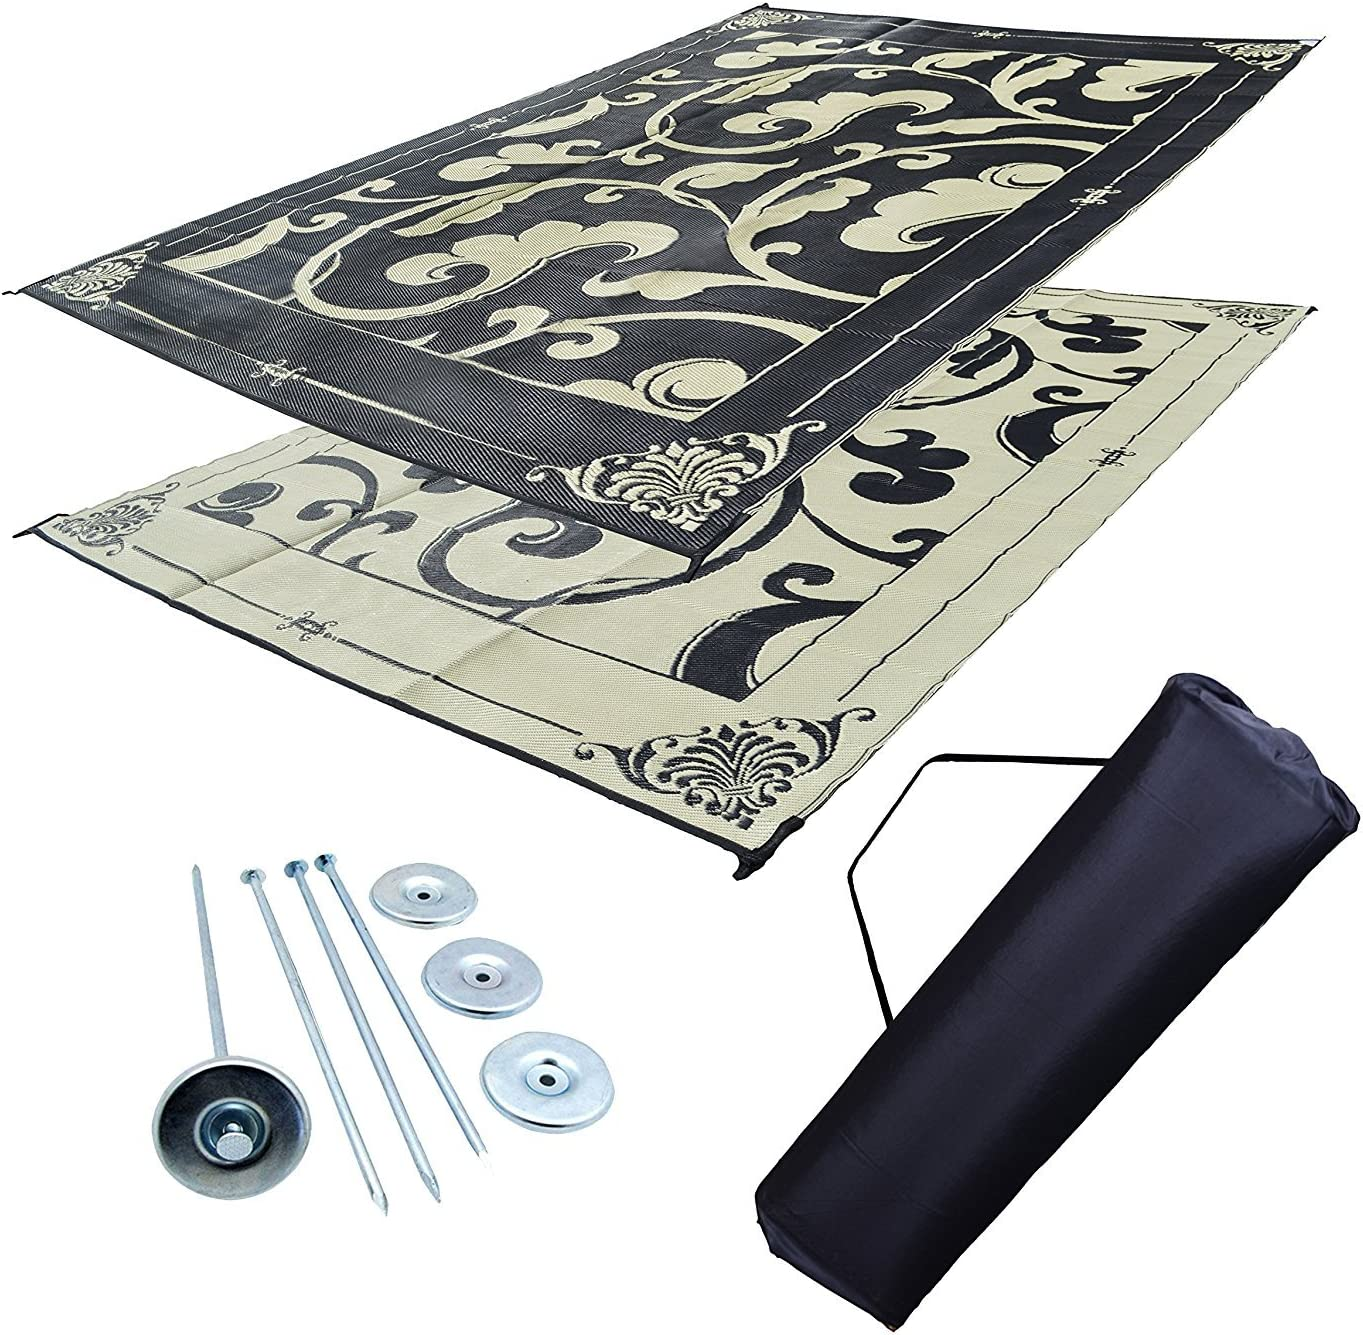 Professional EZ Travel Collection RV Patio Mat Awning Trailer Mat Pirate Flag 9x18